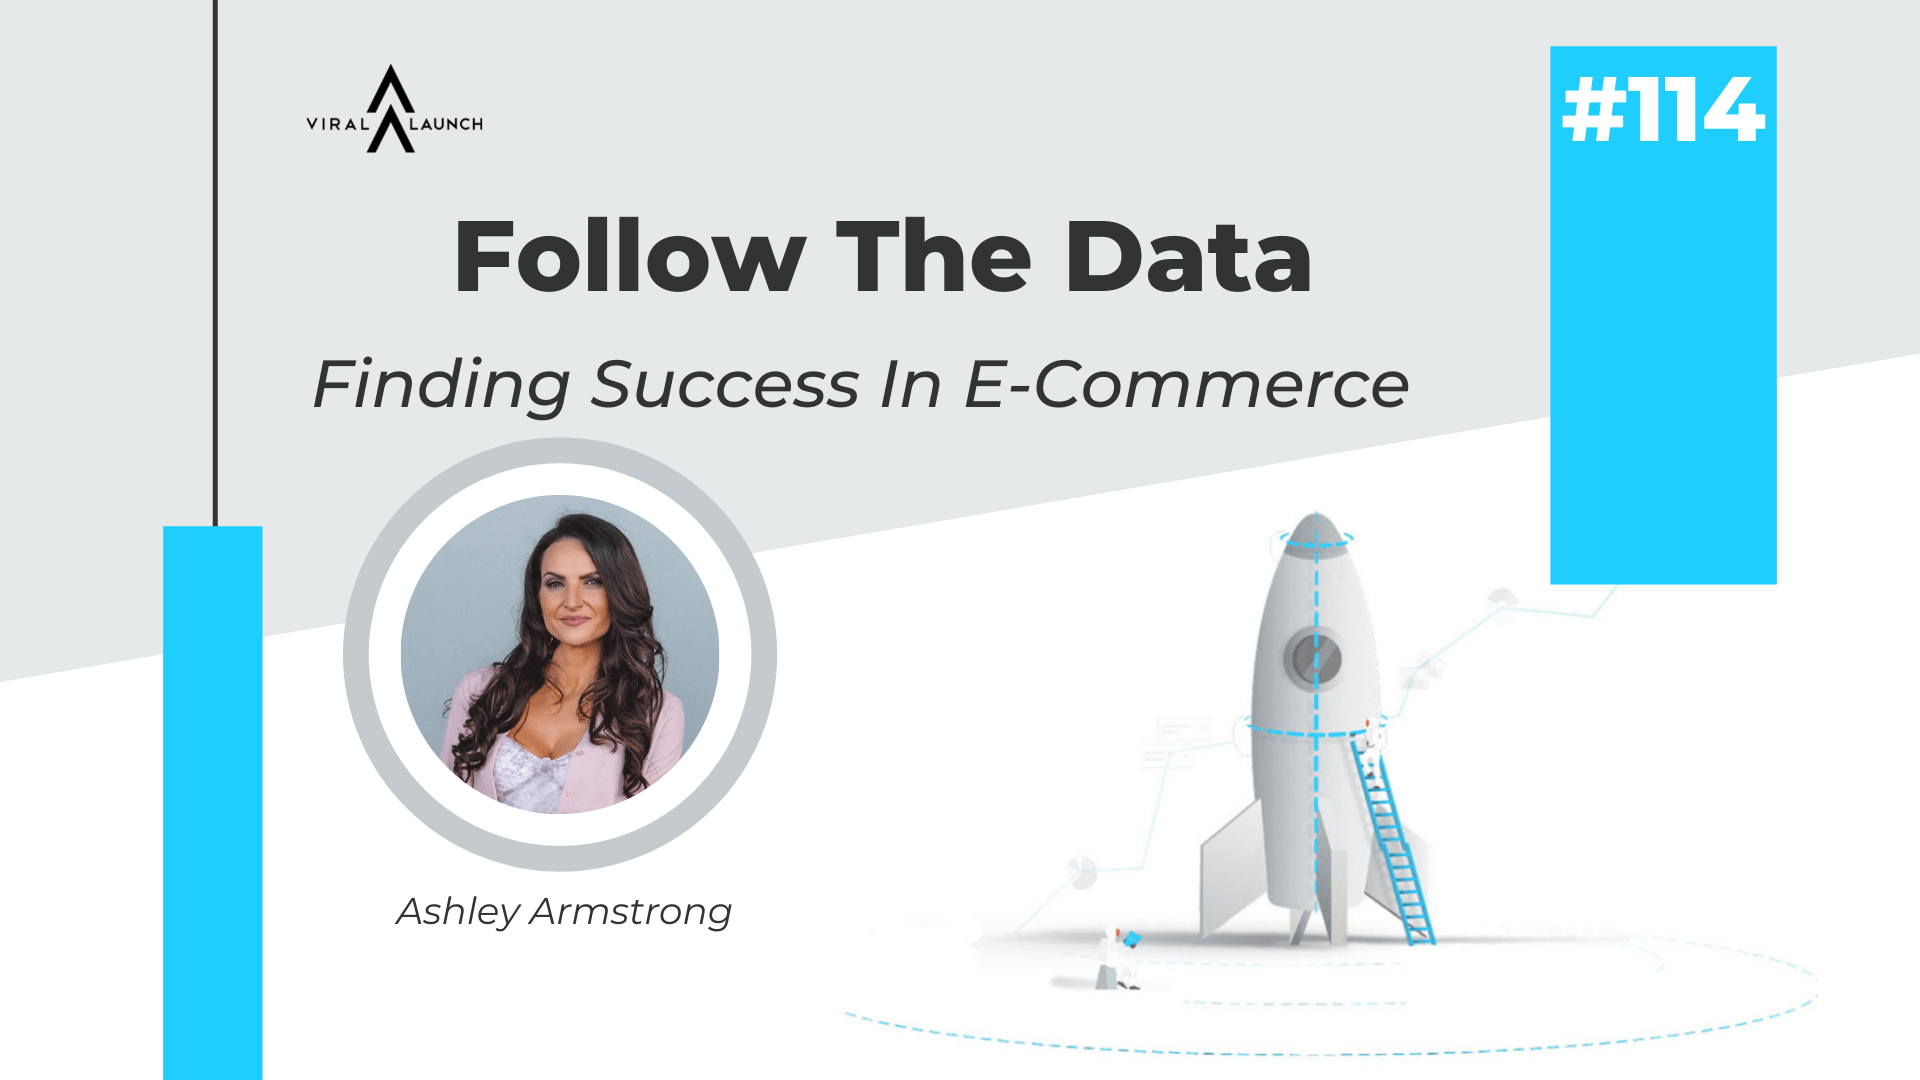 Follow the data amazon seller podcast finding success in e-commerce